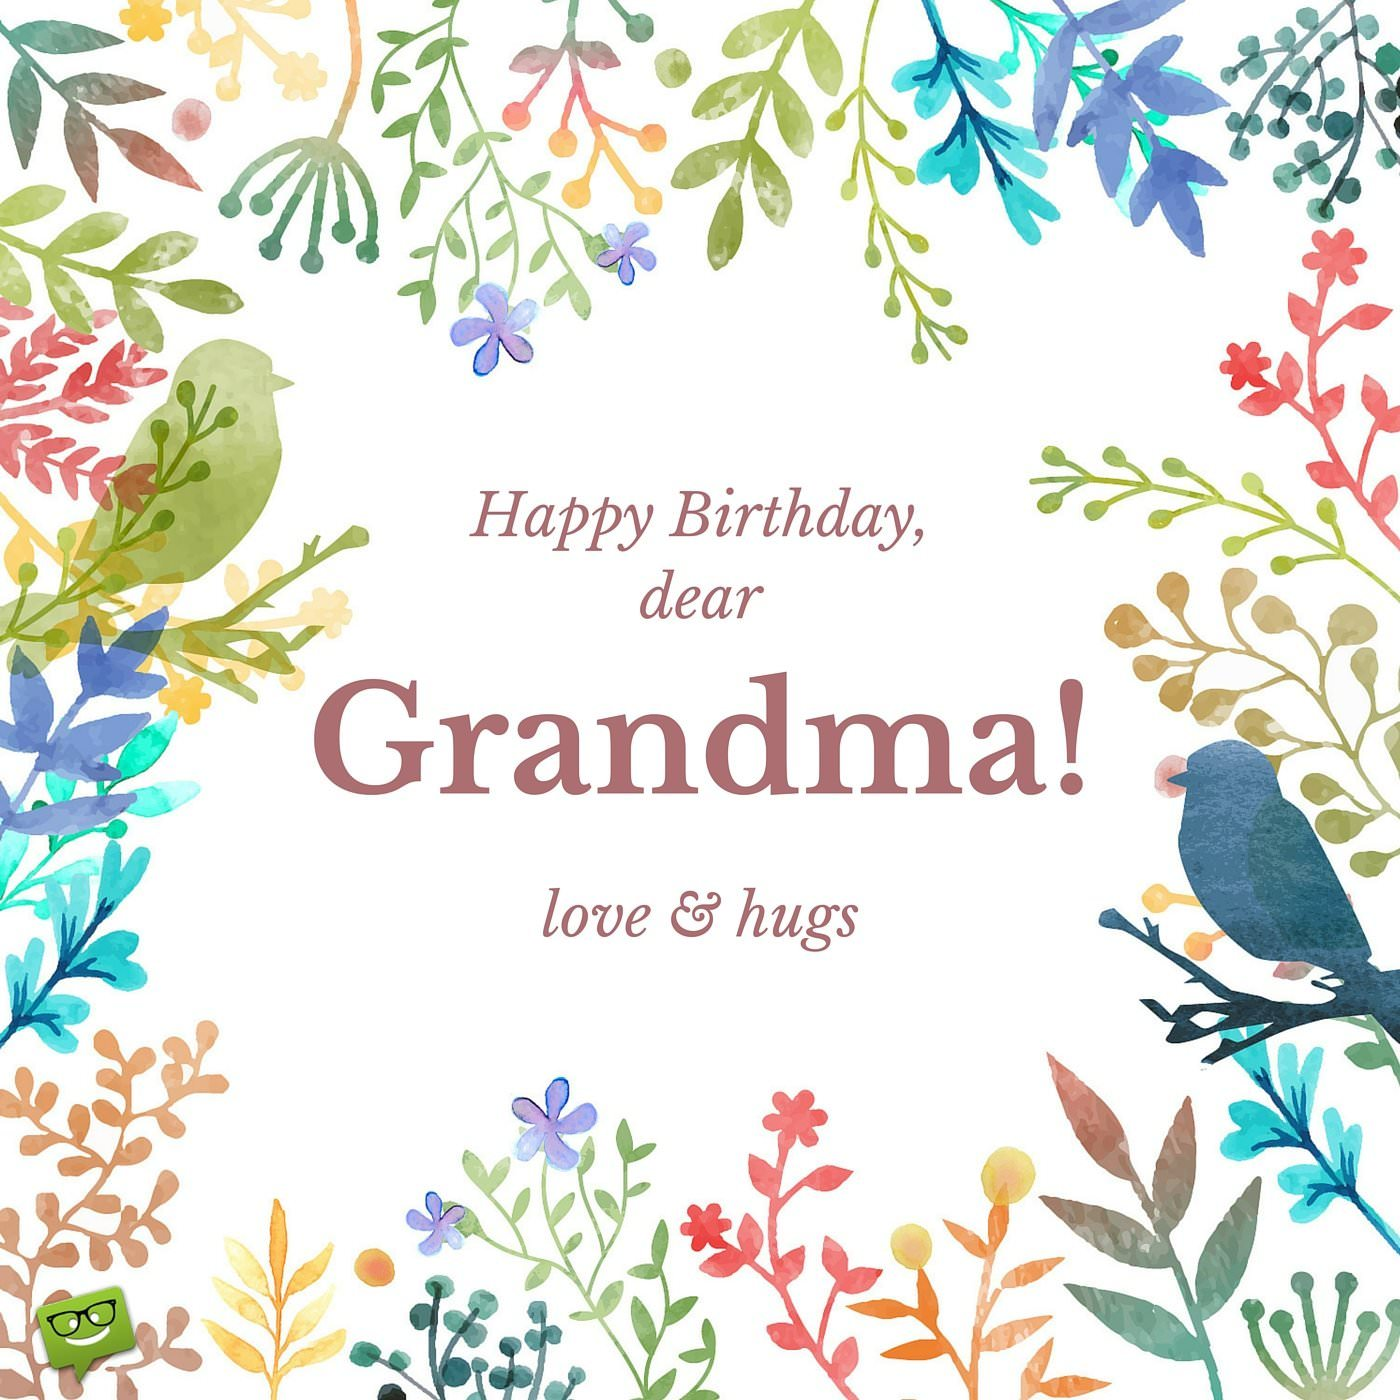 Warm Wishes For Your Grandmother